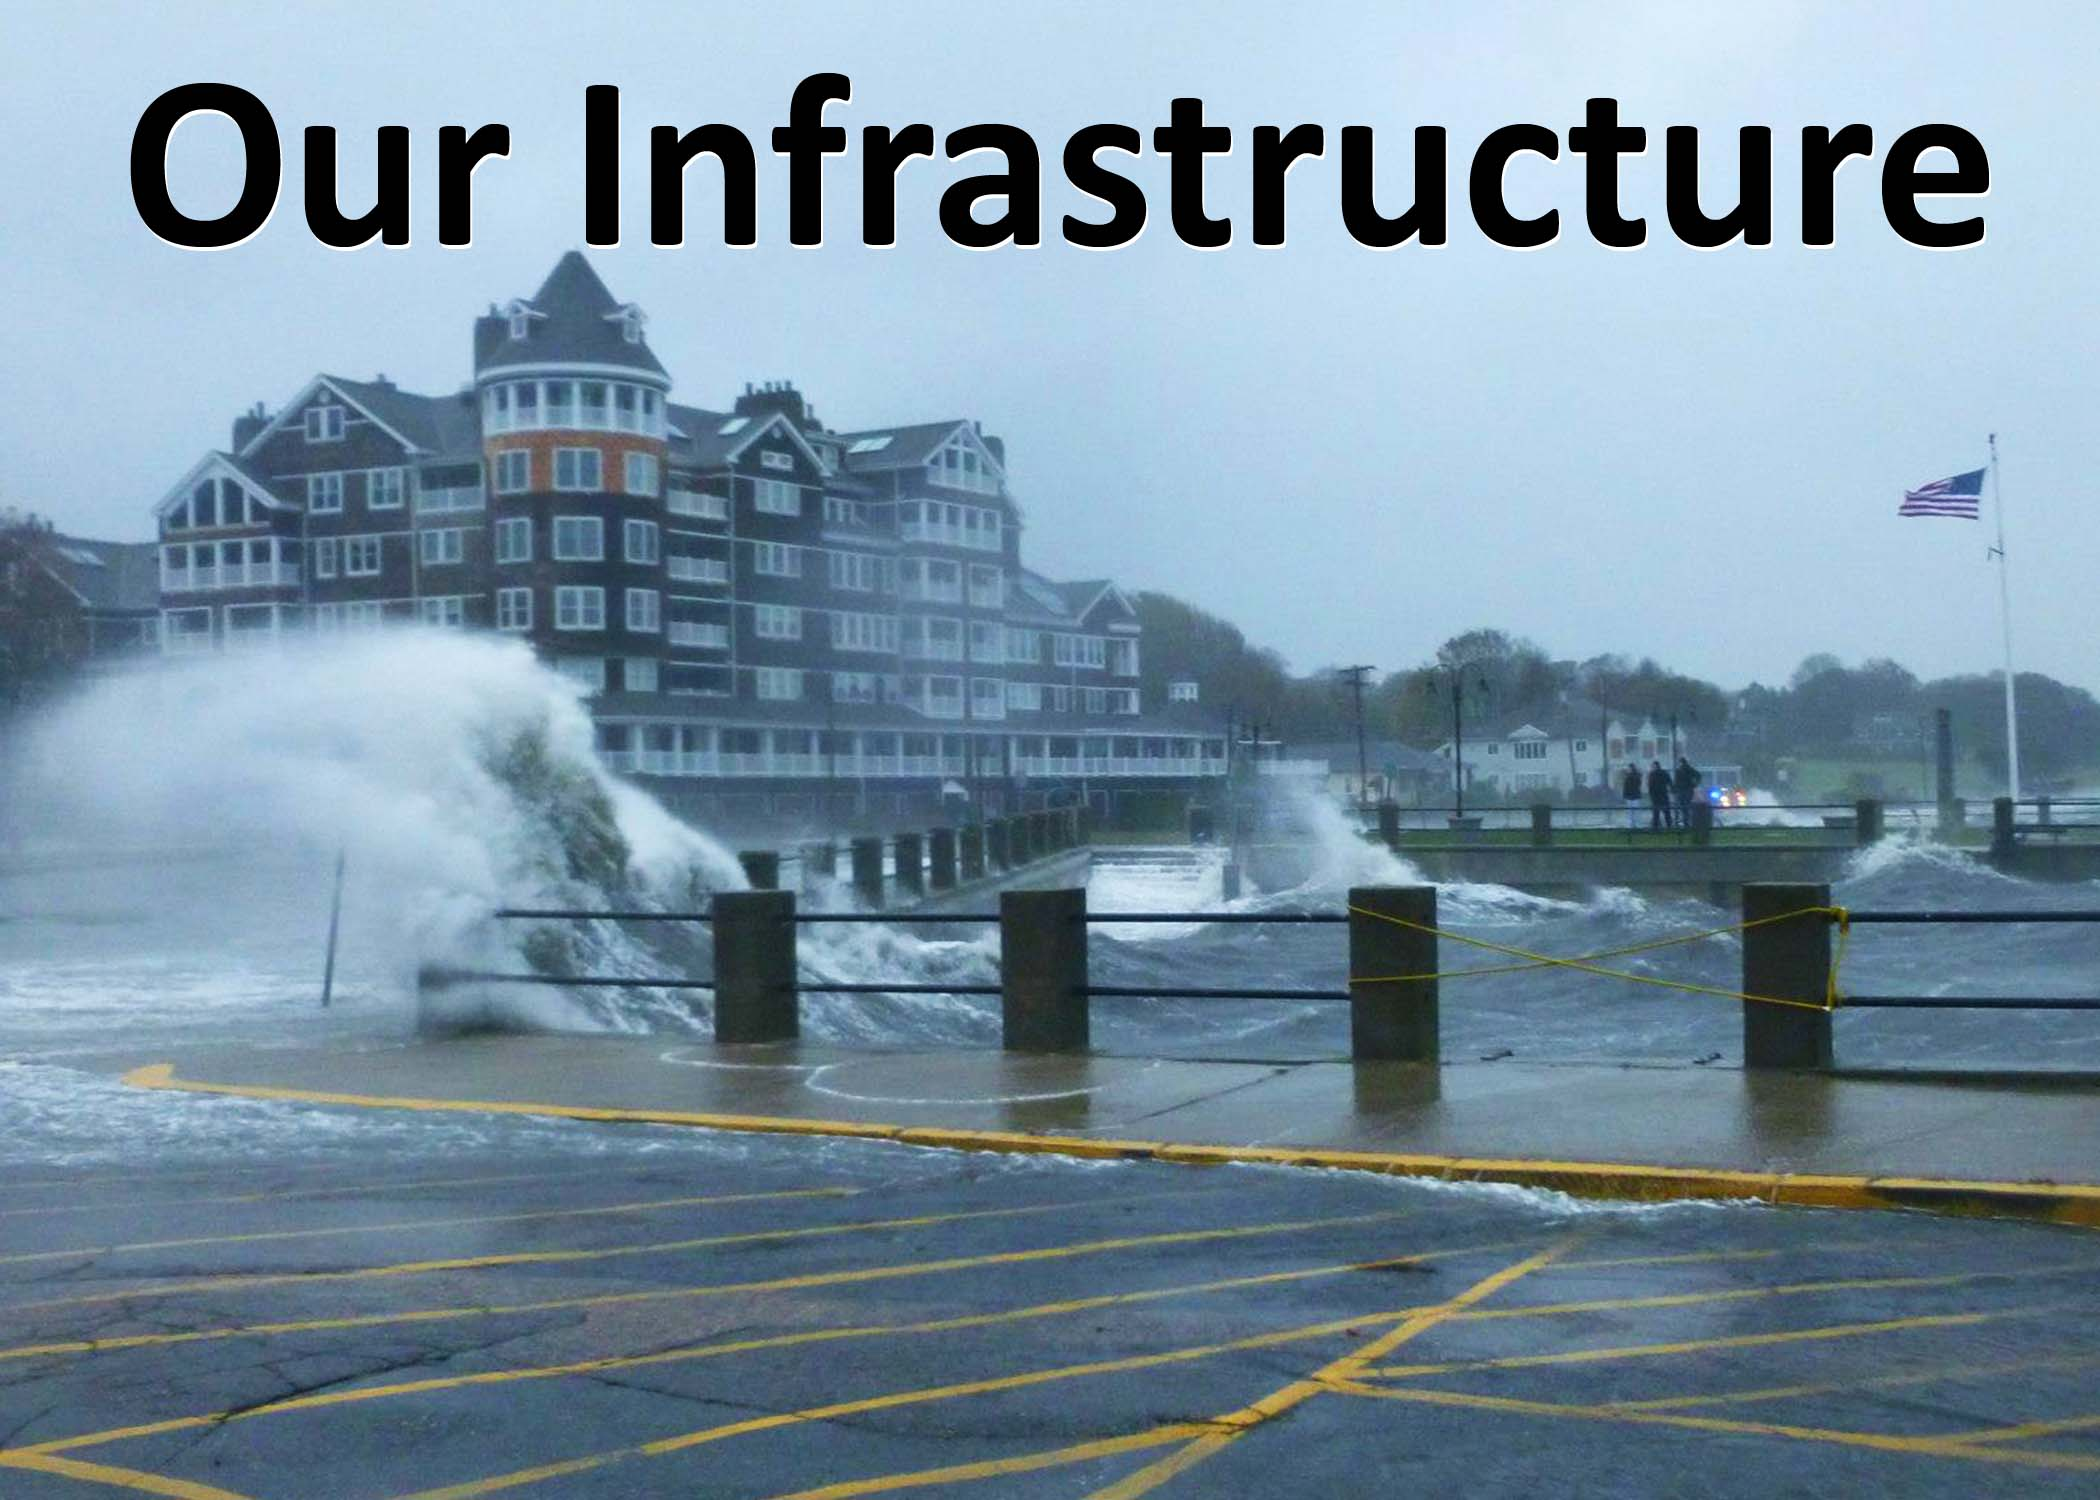 Our infrastructure text.jpg